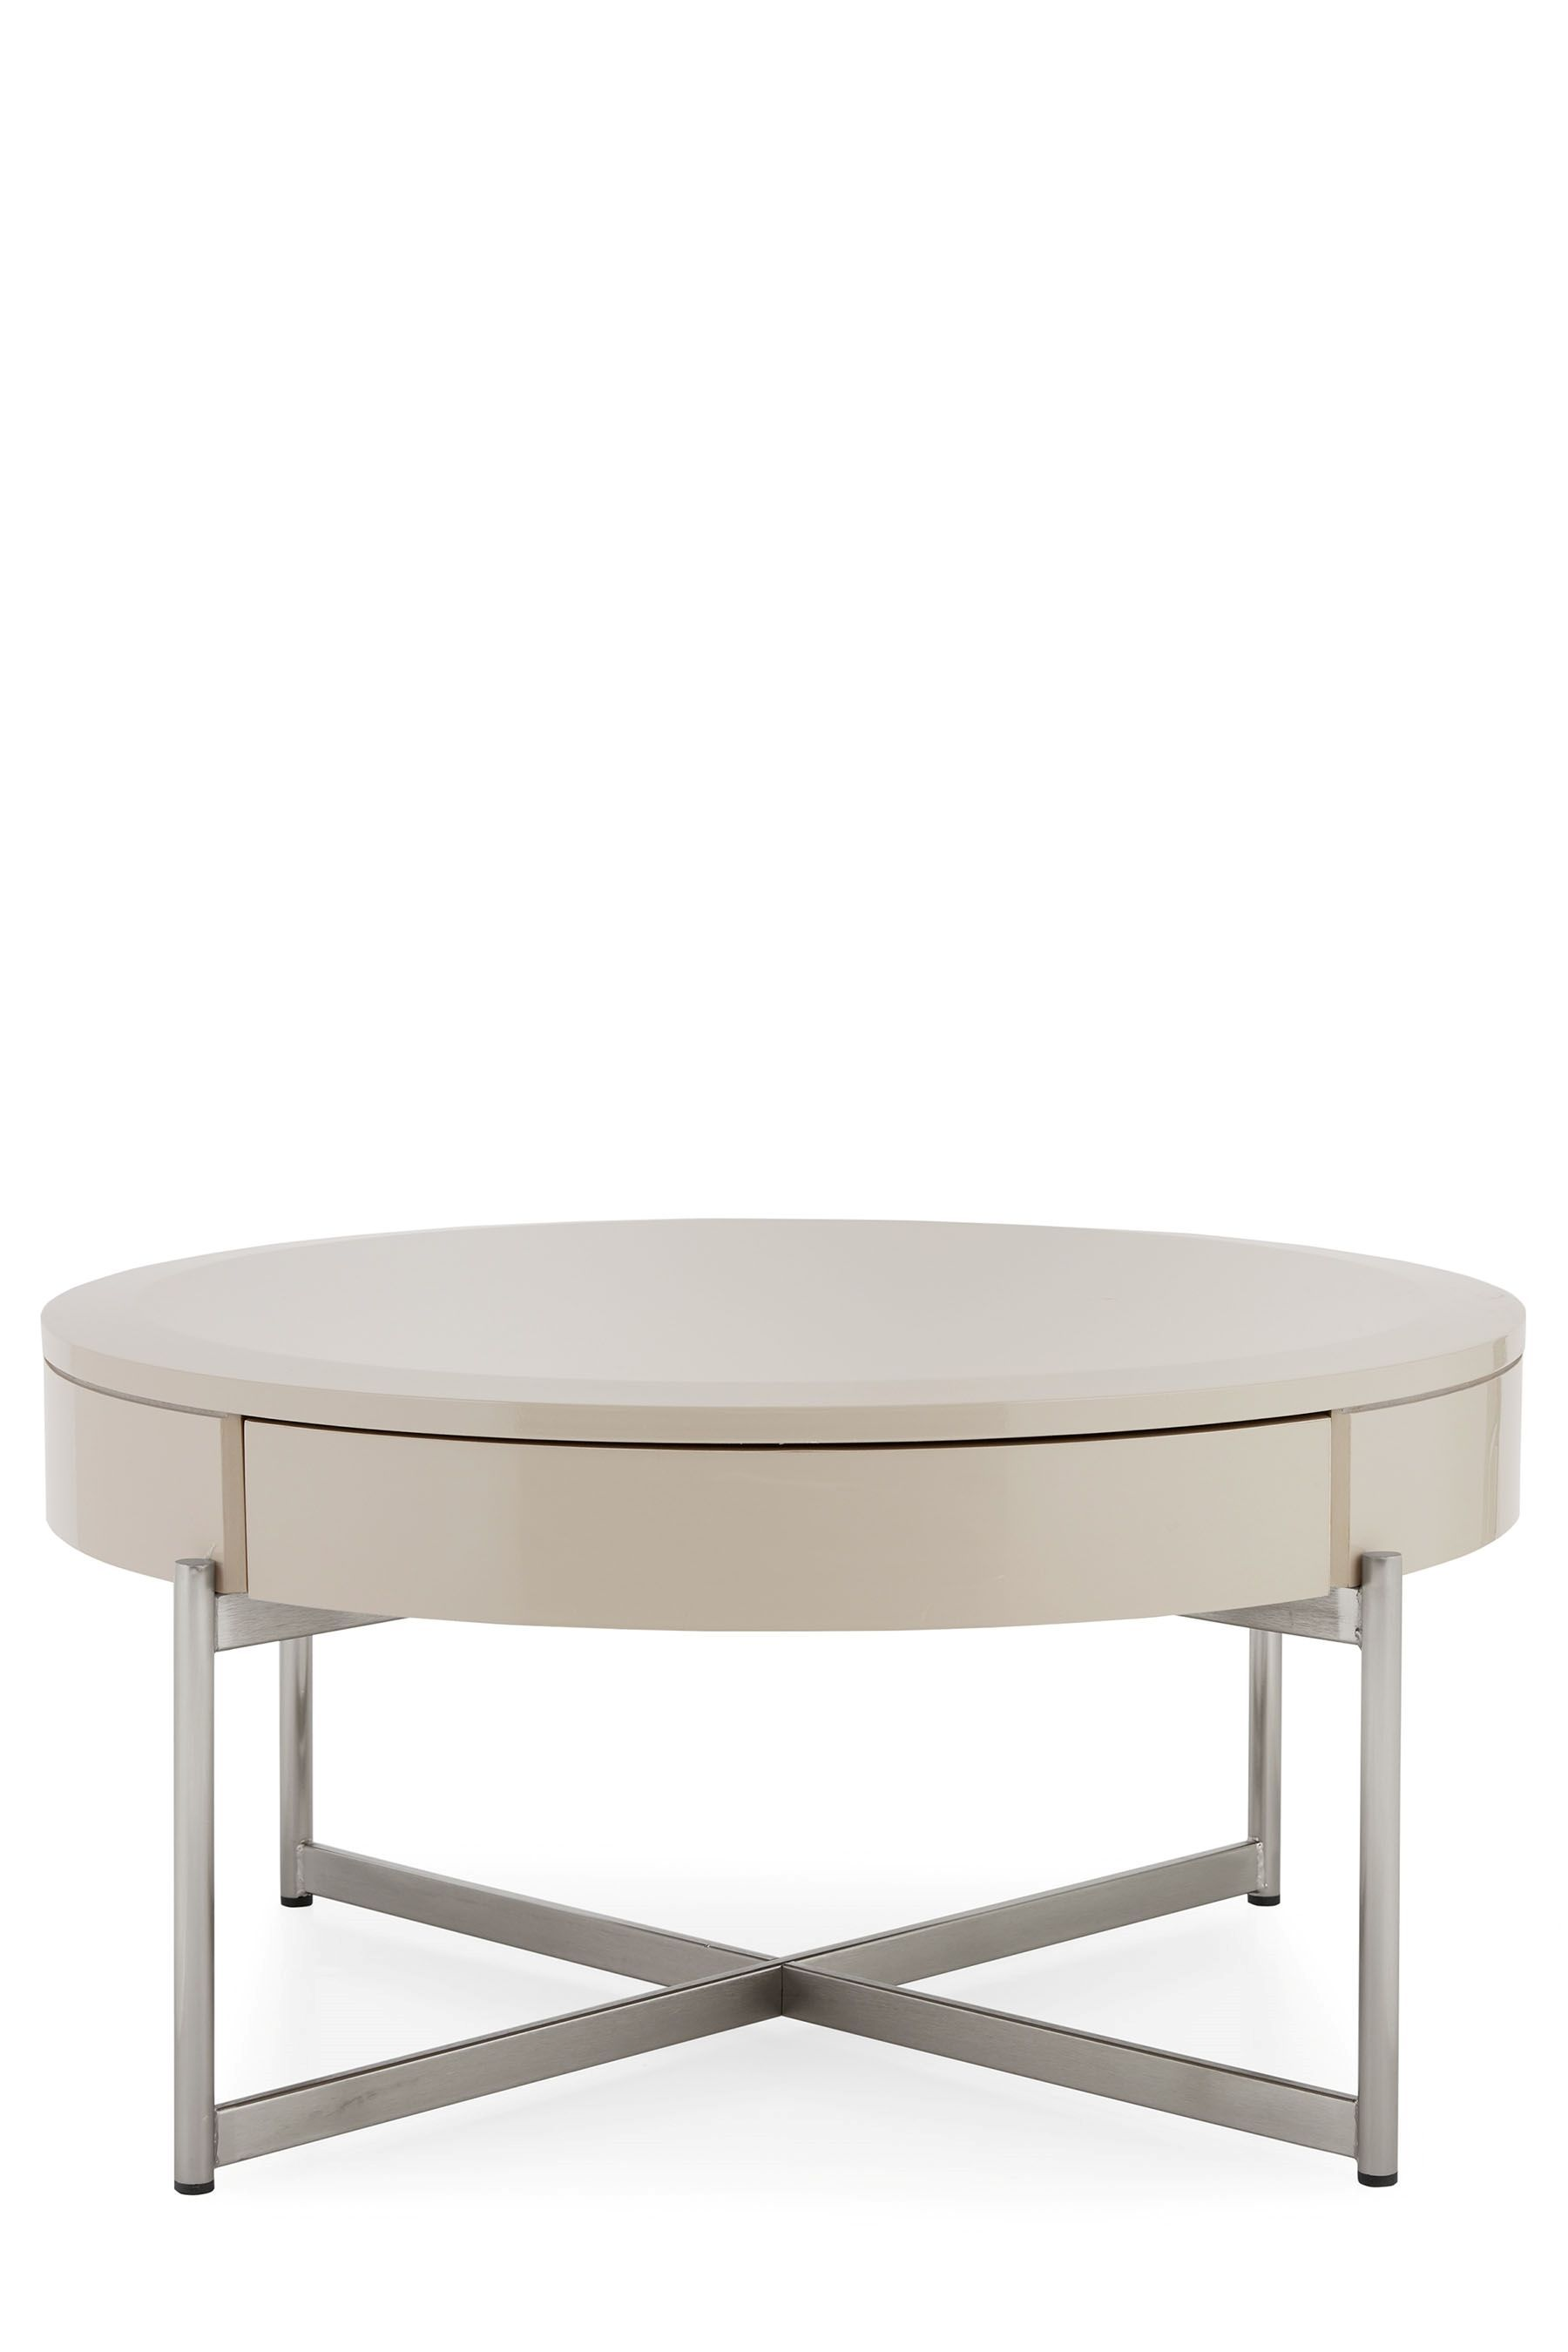 Buy Logan Taupe Coffee Table from the Next UK online shop